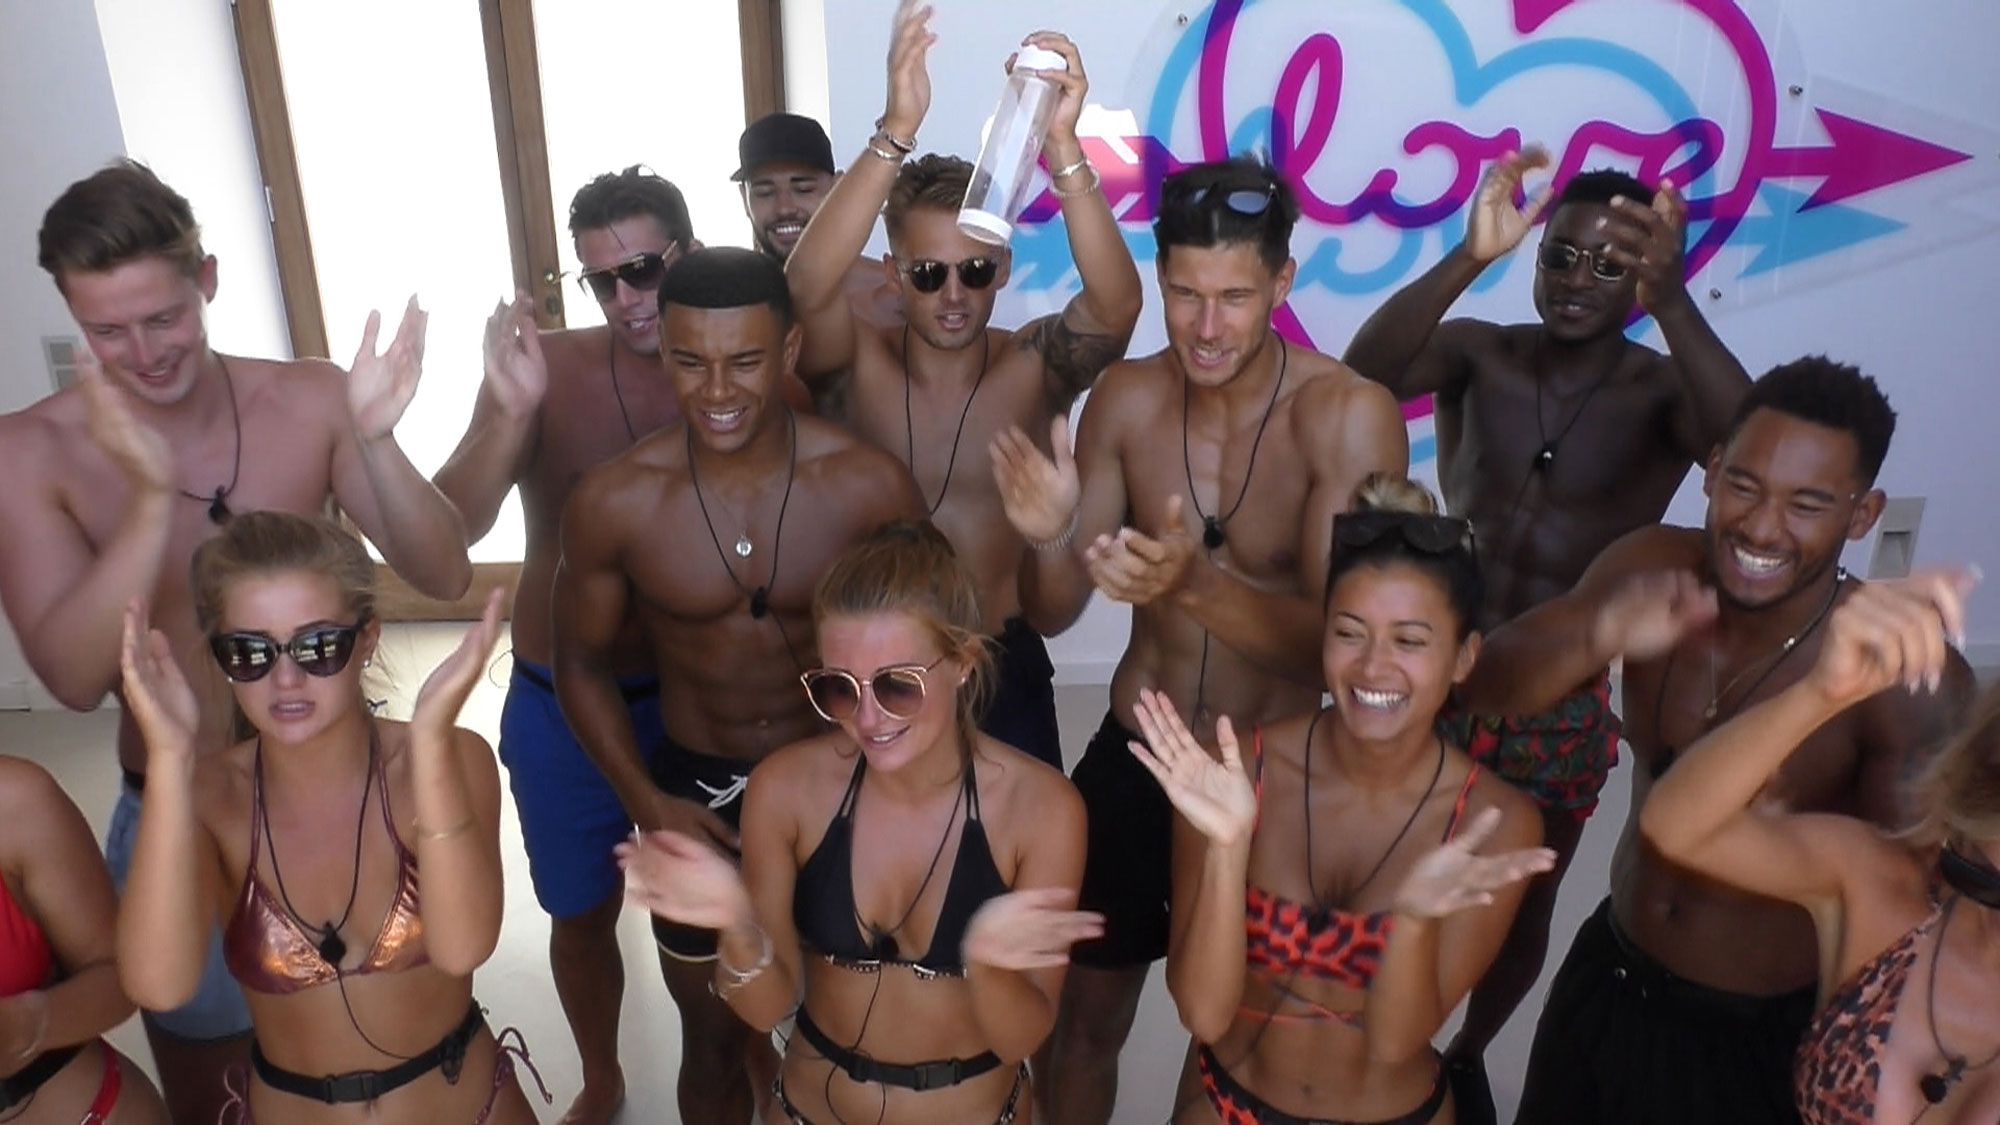 Love Island 2019: Release Date, Cast, Date, Trailer And All You Need To Know!